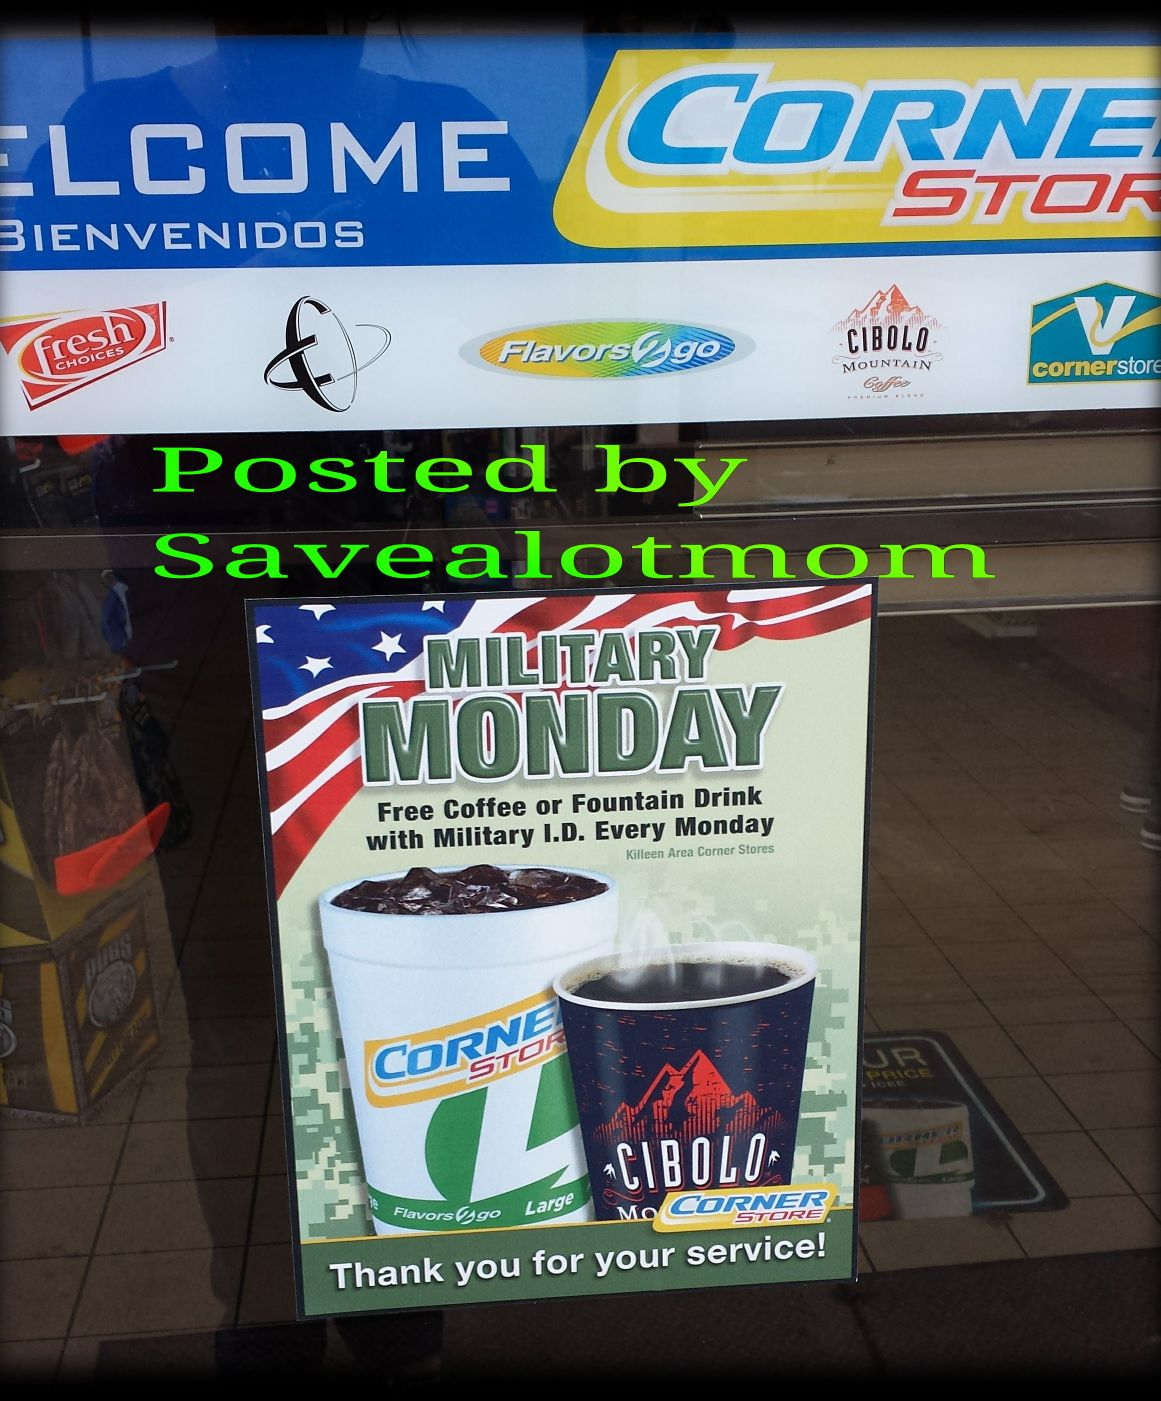 FREE Drink every Monday!